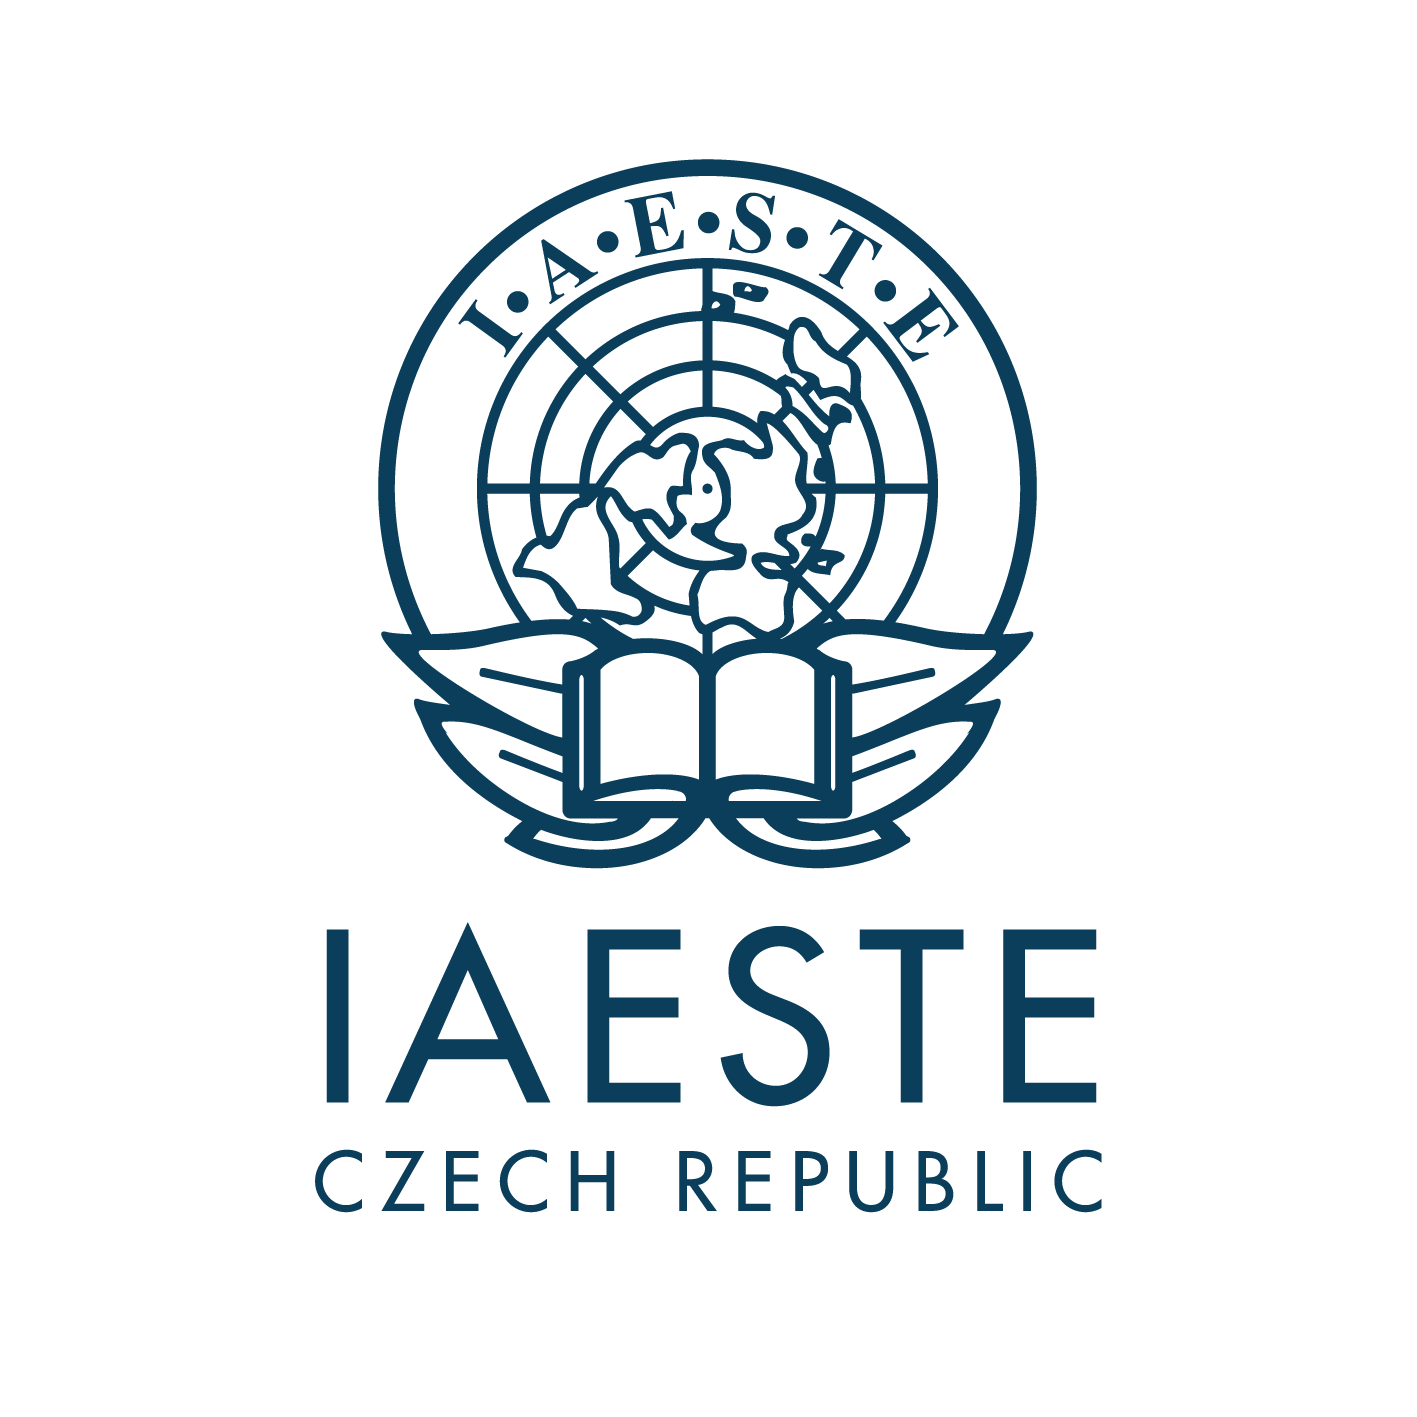 IAESTE Czech Republic